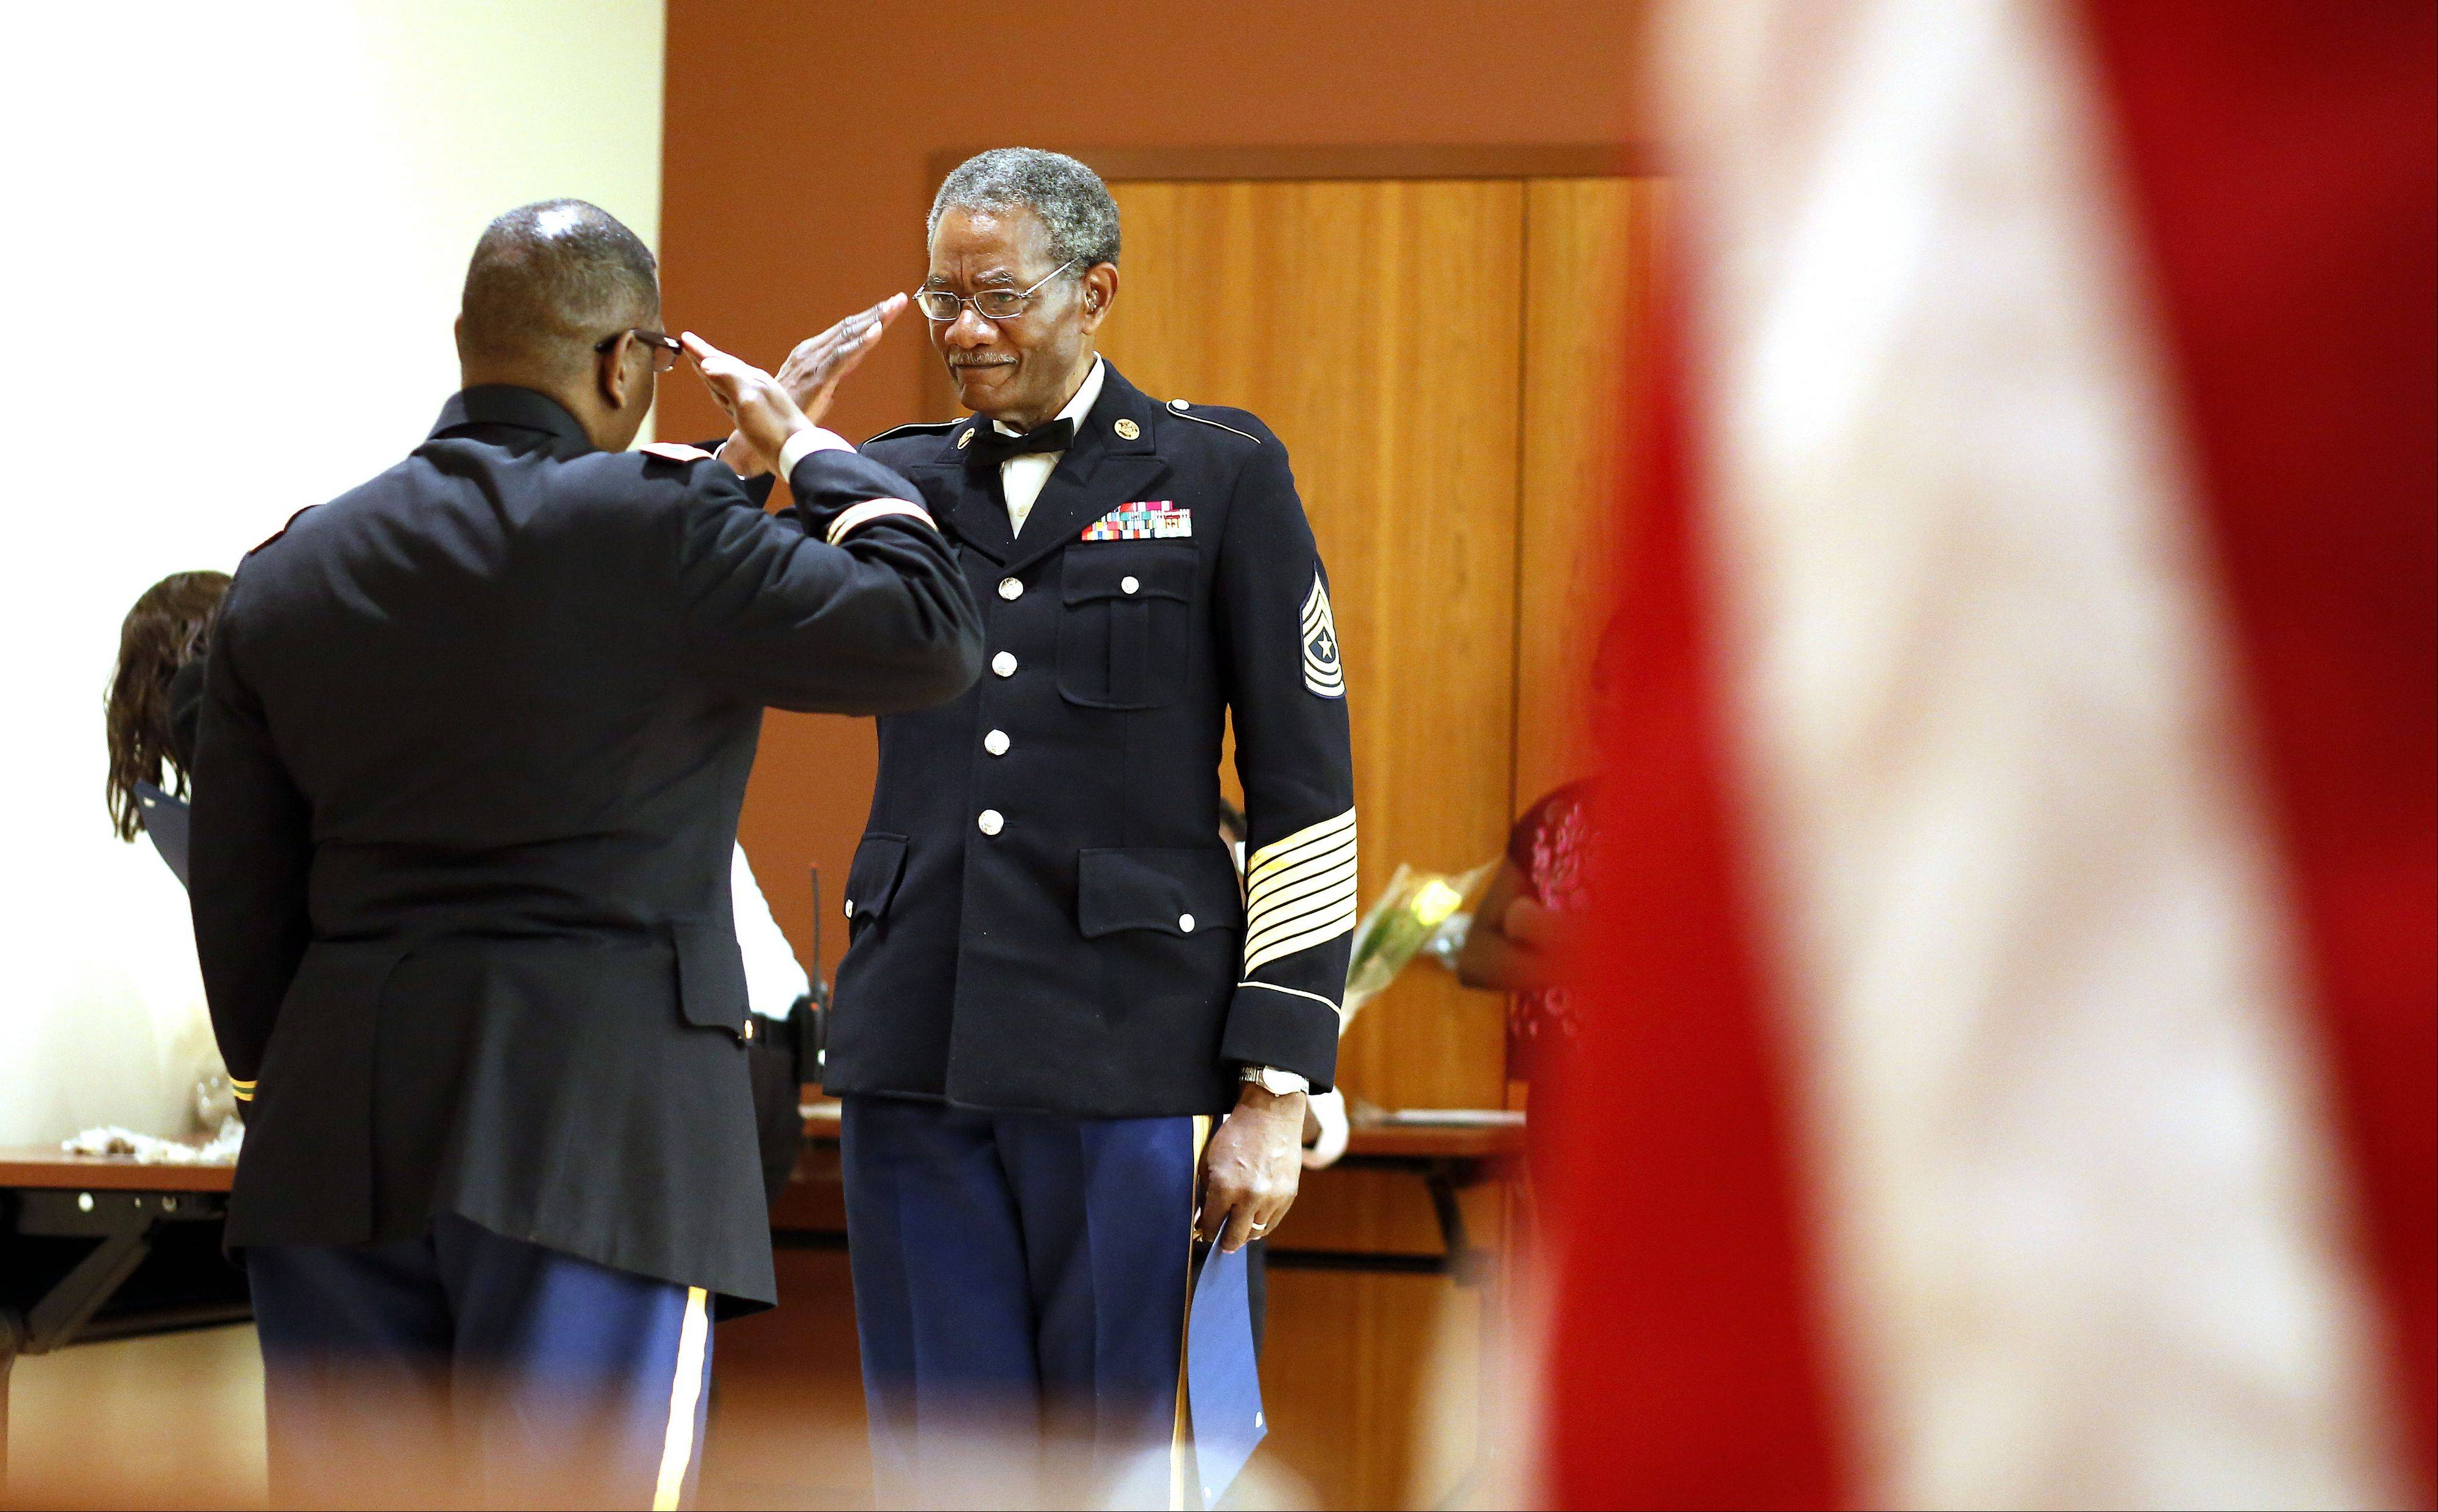 Retired Sgt. Maj. Rubert Carr of Elgin, right, salutes emcee Col. W.E. Scott, left, during the ninth annual Black History Family Festival on Saturday at the Gail Borden Public Library in Elgin. Carr retired in 1982.